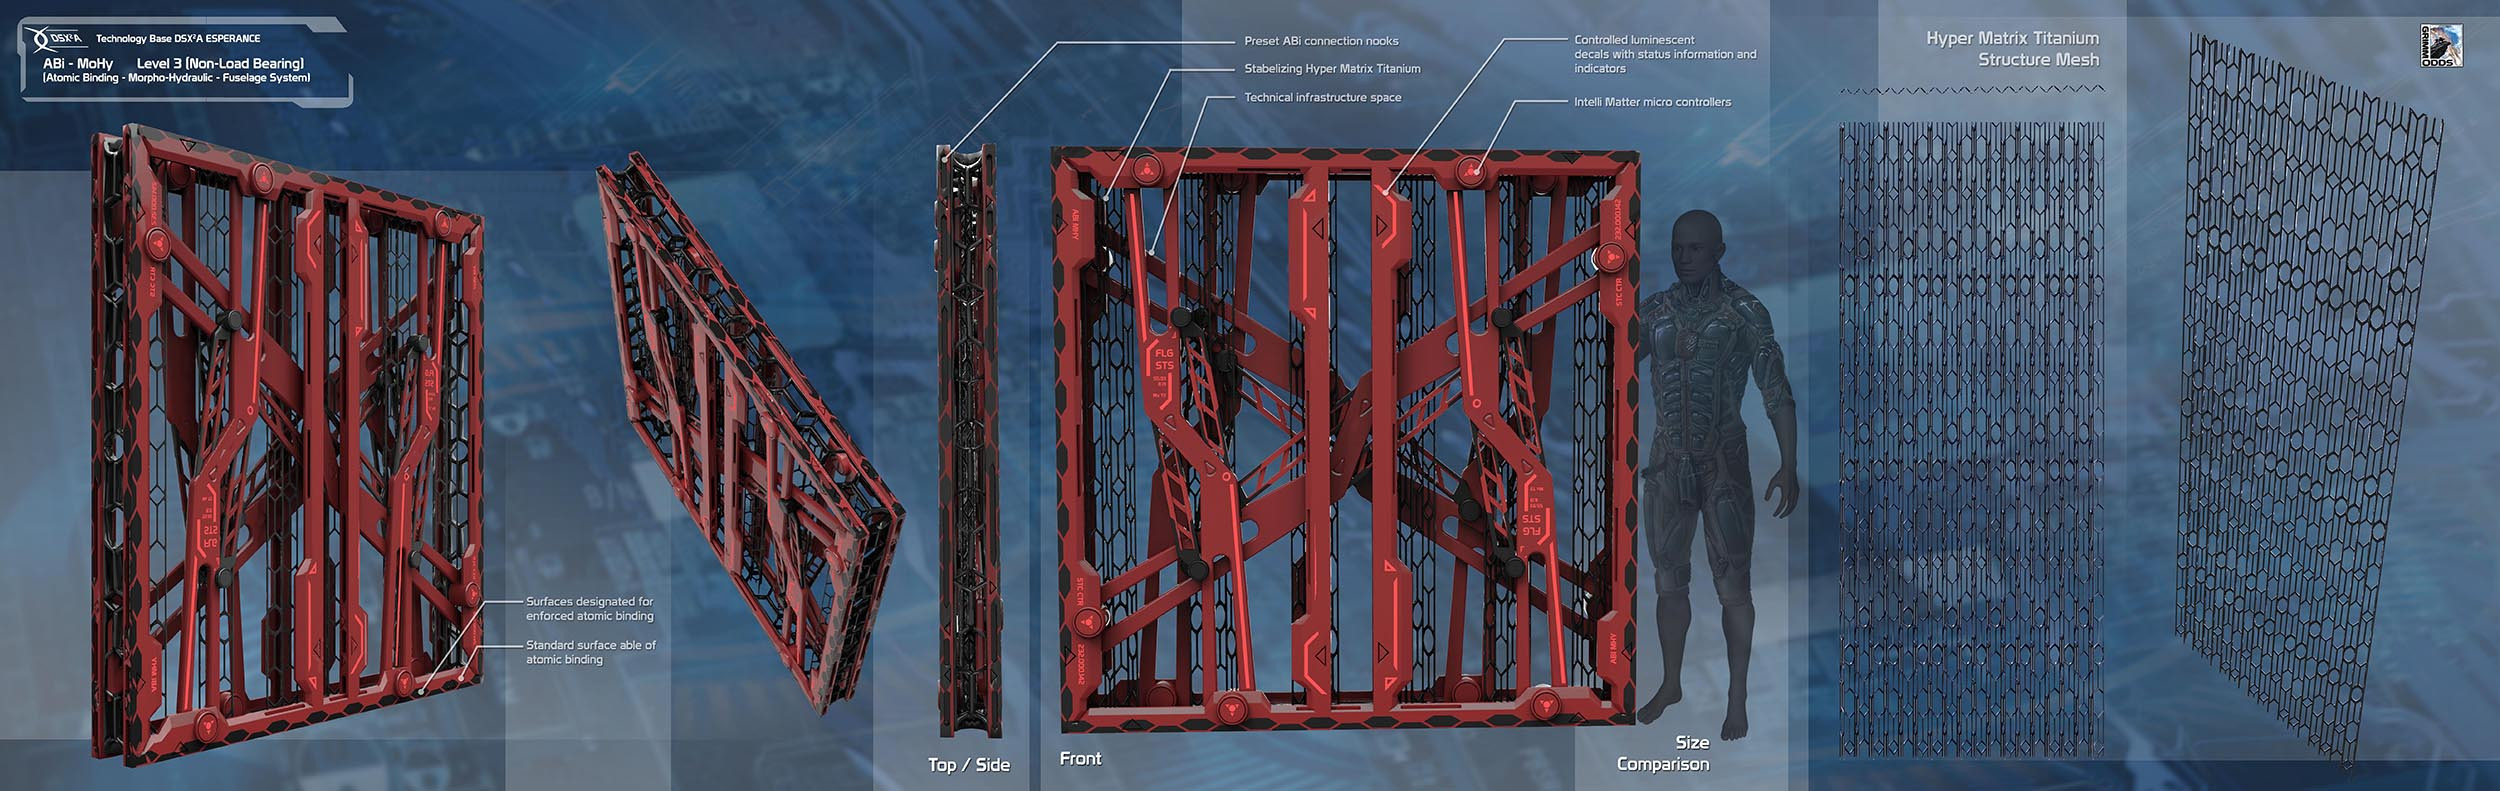 Grimm Odds - Structural Parts - Light Wall Structure